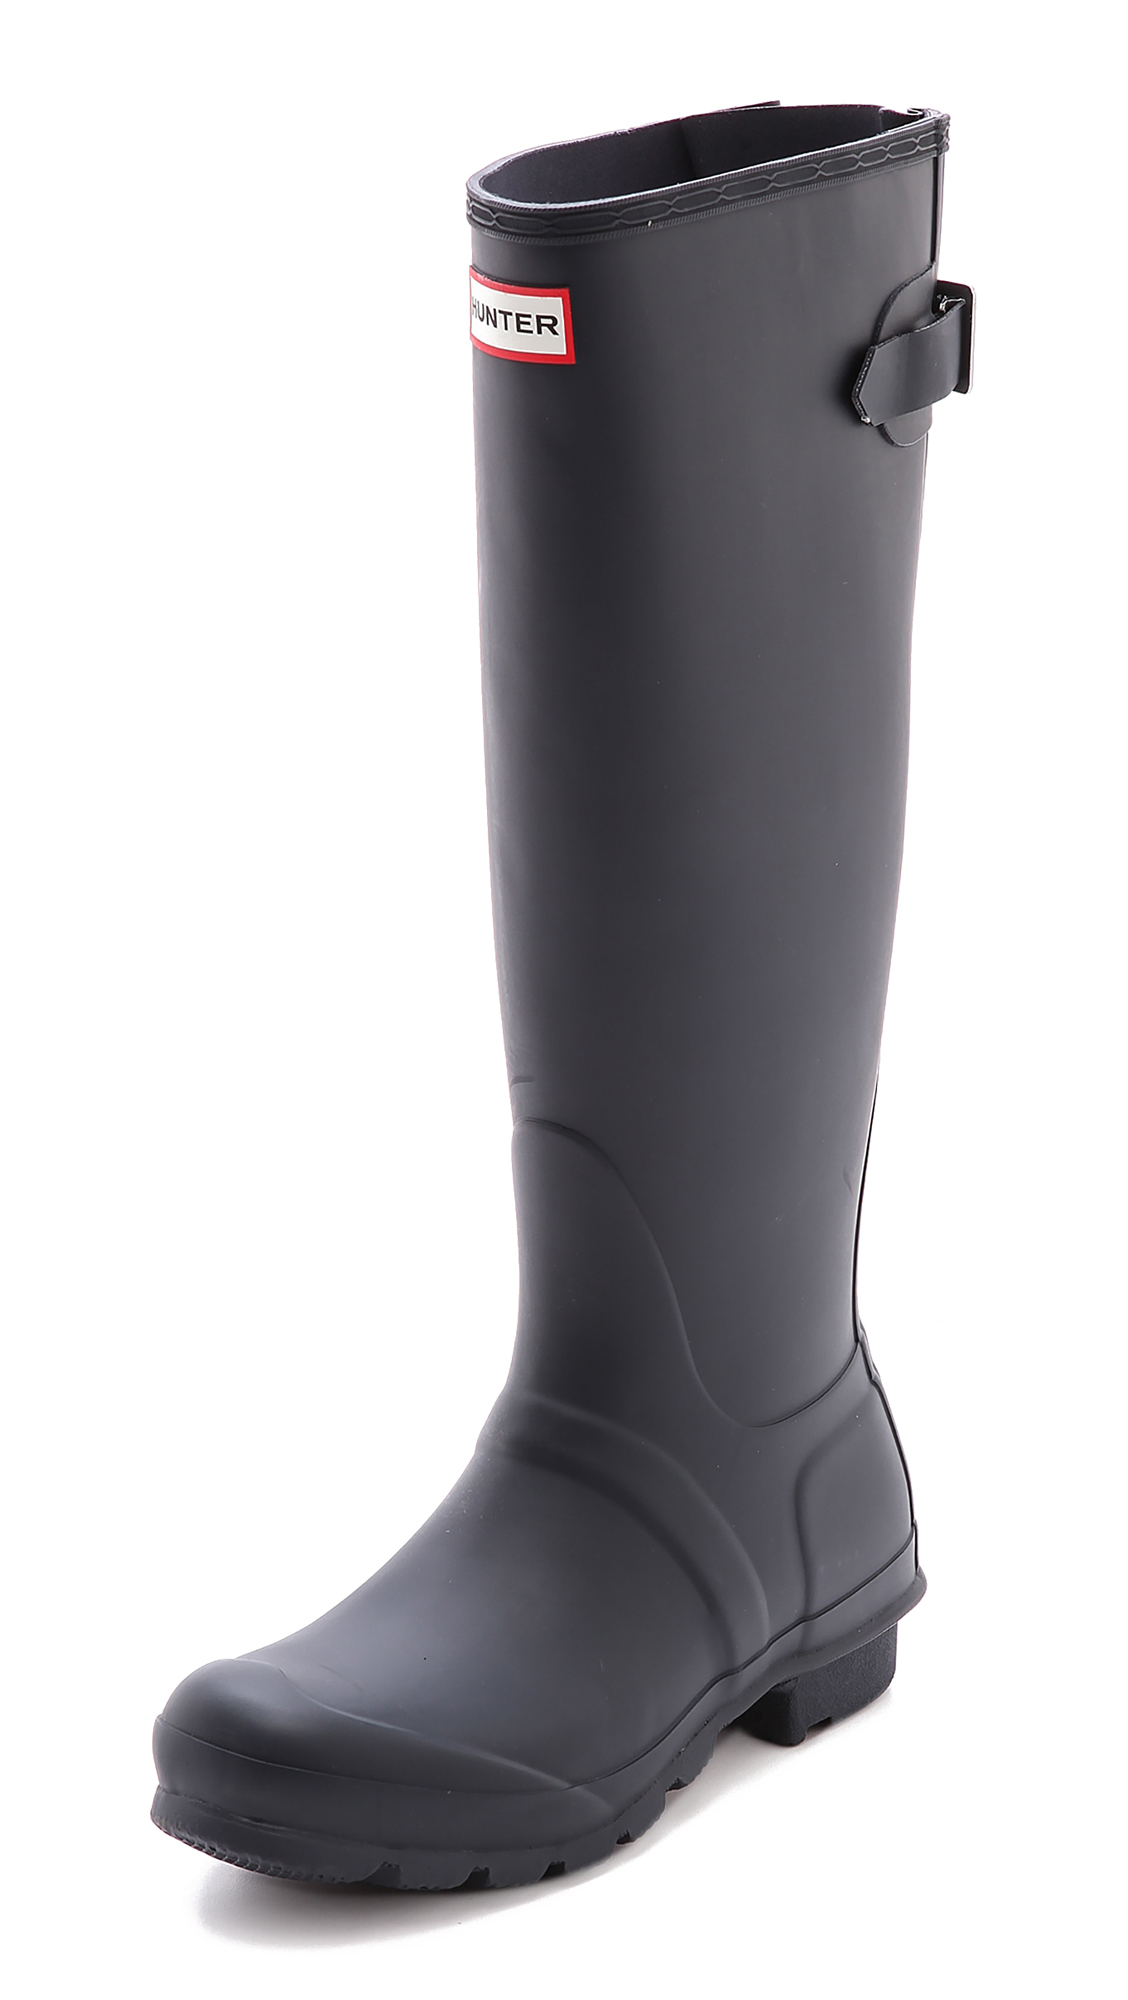 Hunter Boots Original Back Adjustable Boots - Navy